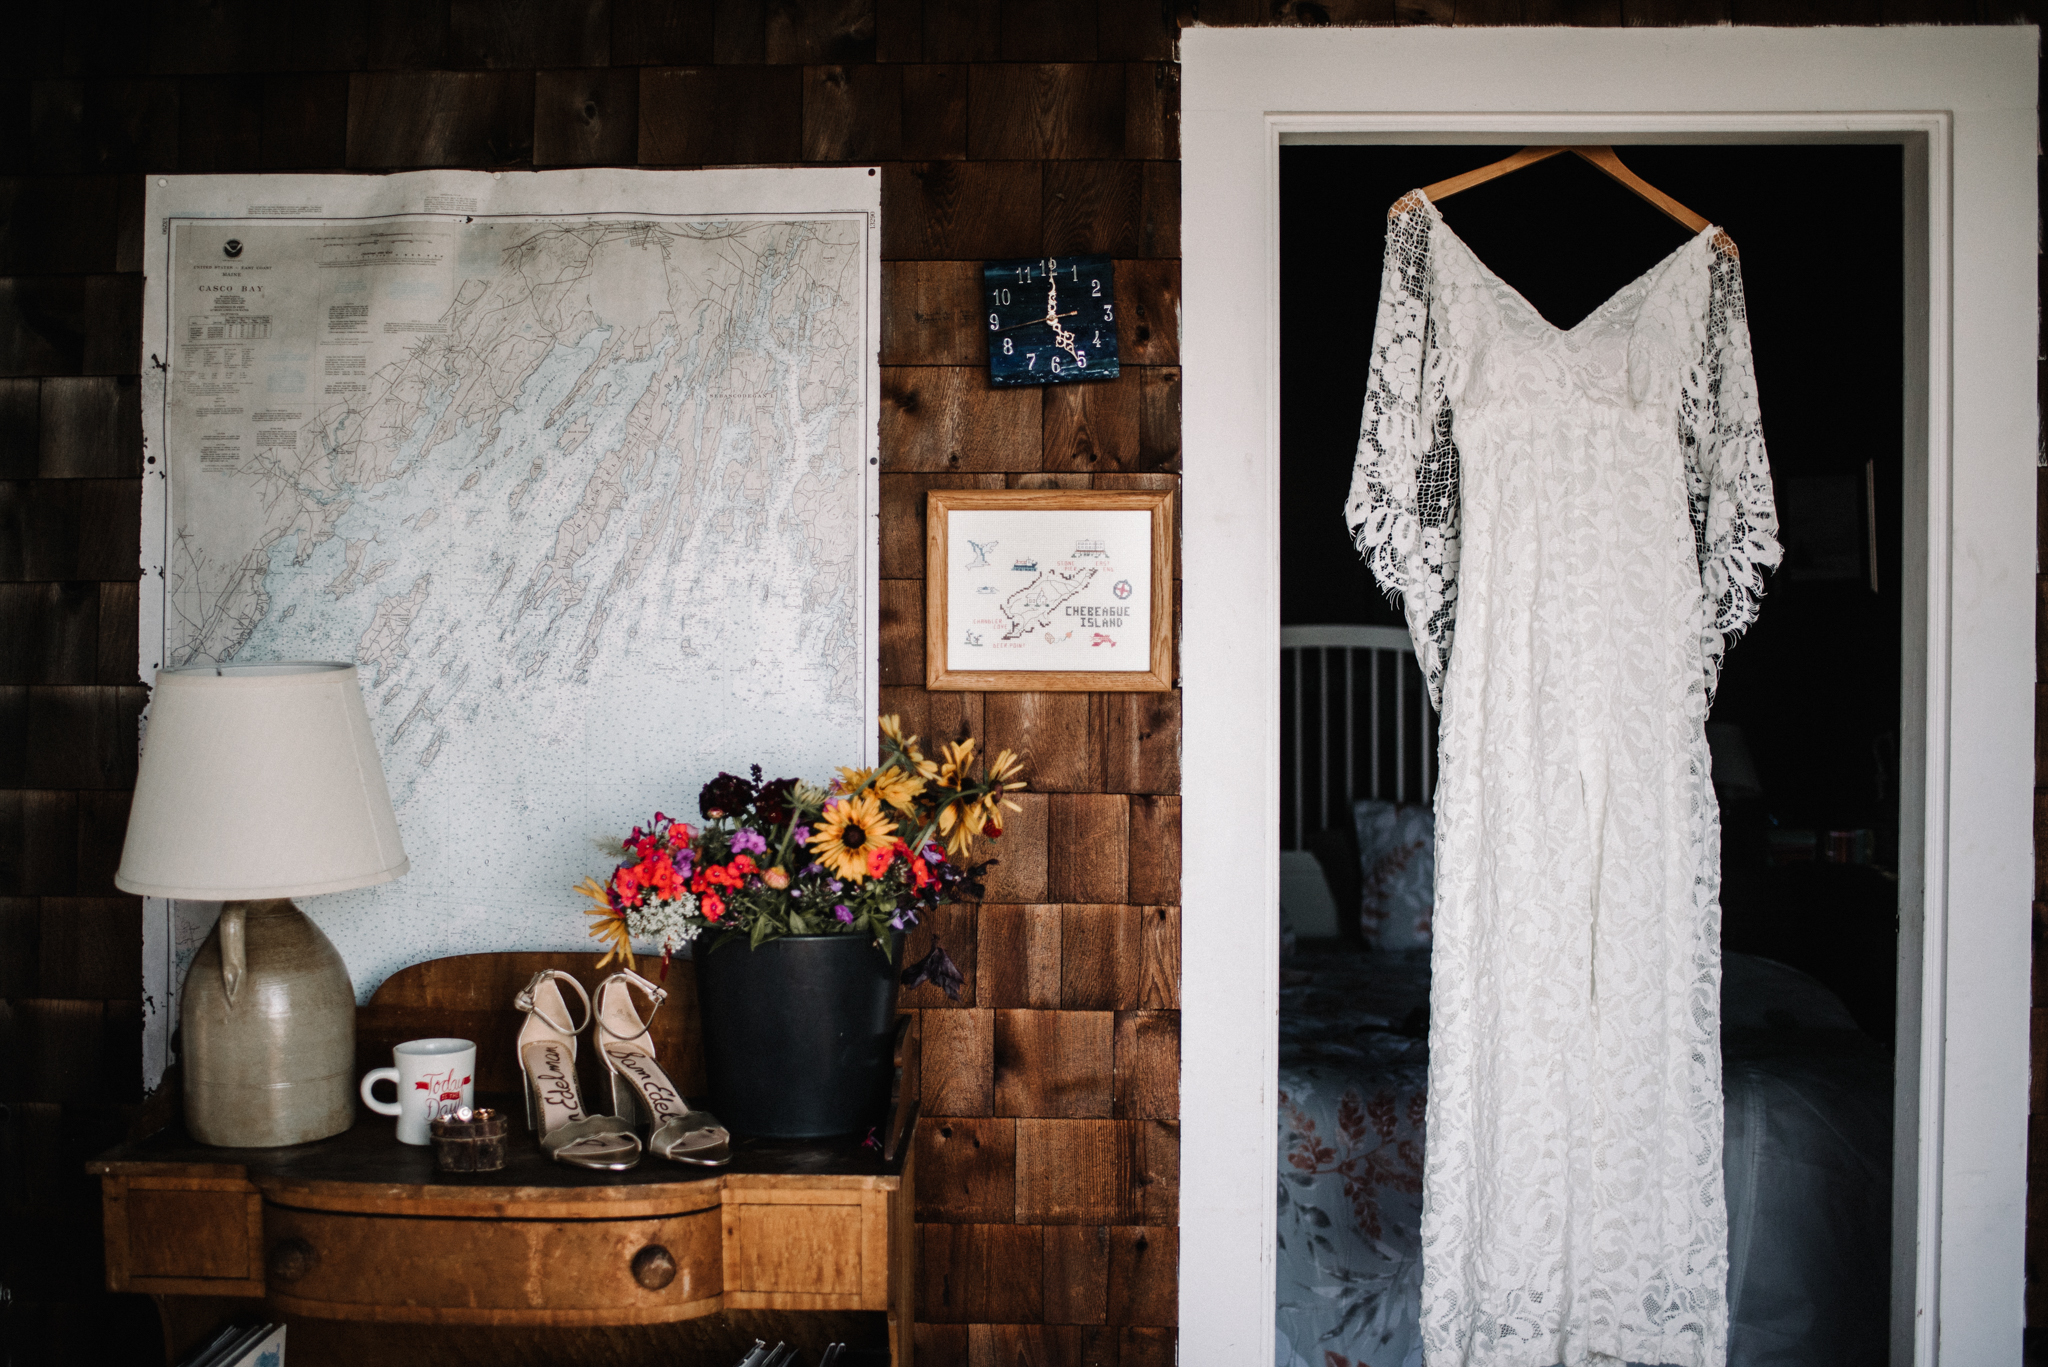 Breaking Wedding Traditions - How to Have an Intimate Wedding - How to Have a Back Yard Wedding - How to Have an Eco Friendly Wedding - Virginia Wedding Planning - Back Yard Wedding in Virginia - Unique Wedding Ideas - Picking Your Own Wedding Flowers - Pot Luck Wedding - Making Your Own Wedding Food